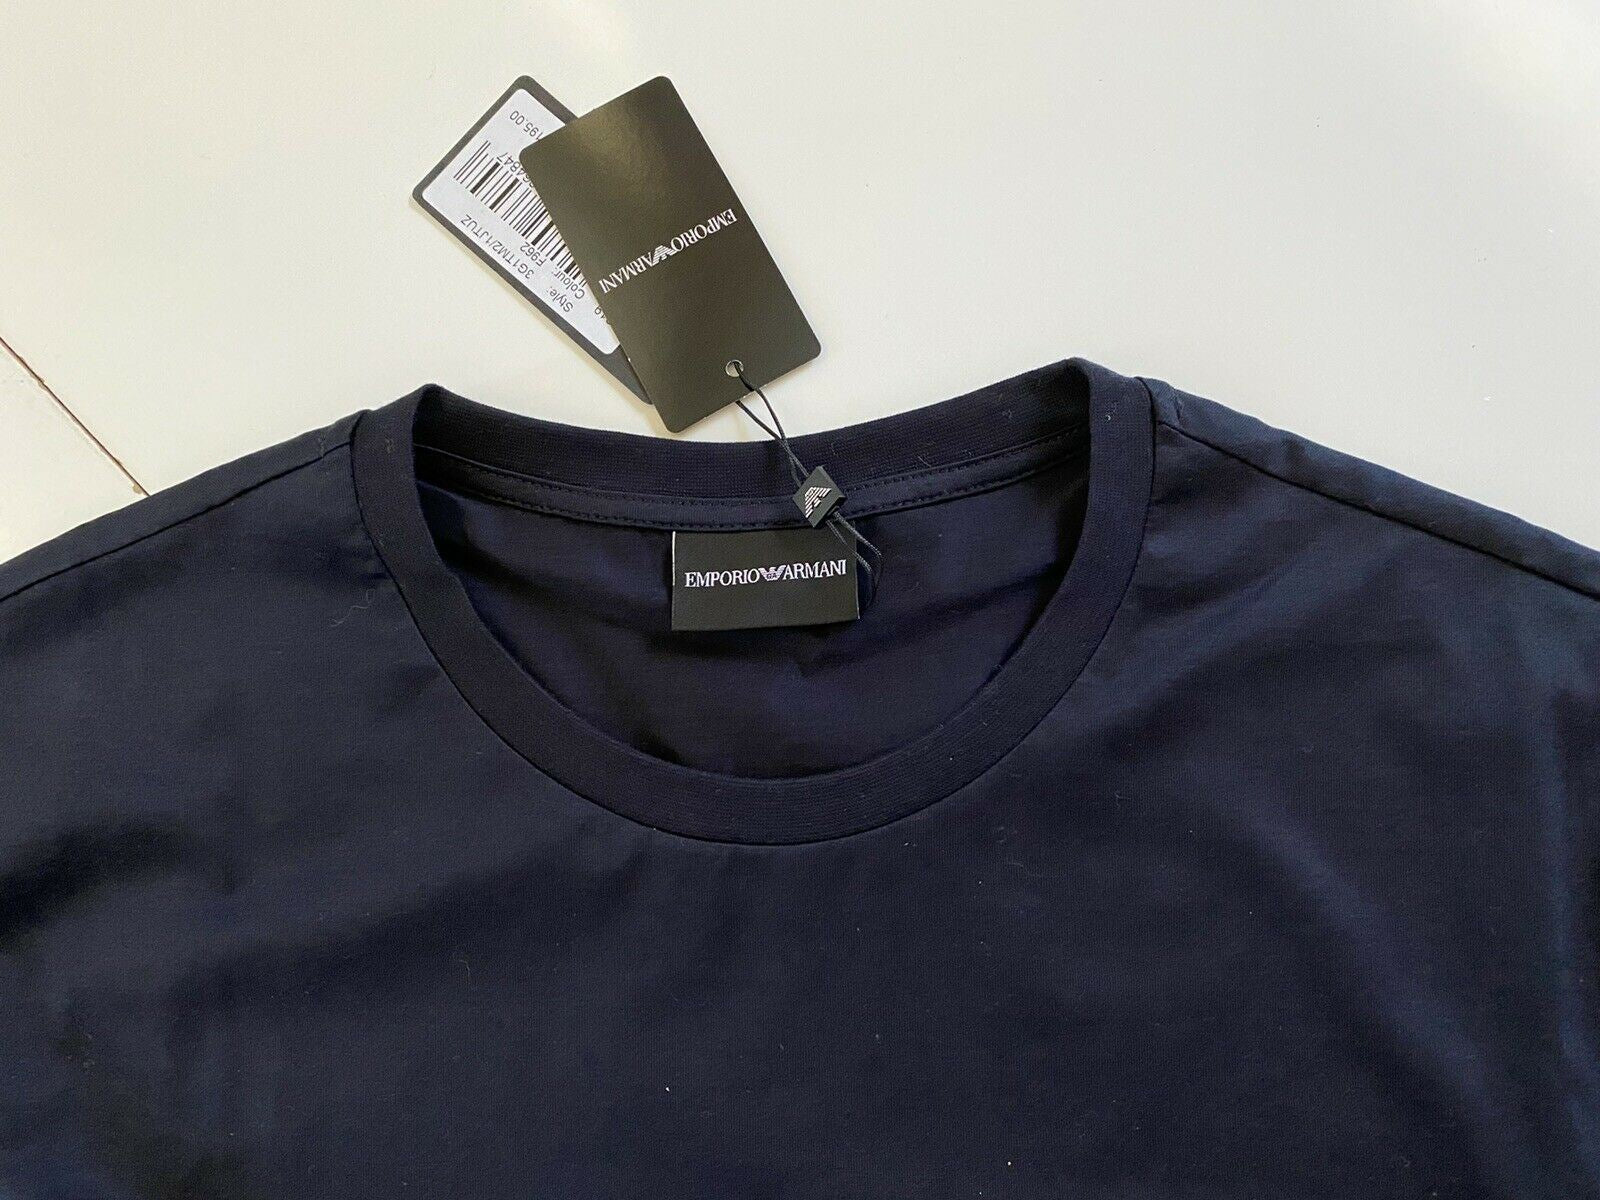 NWT $195 Emporio Armani Men's Short Sleeve Manzoni 31 Blue T-Shirt 2XL 3G1TM2